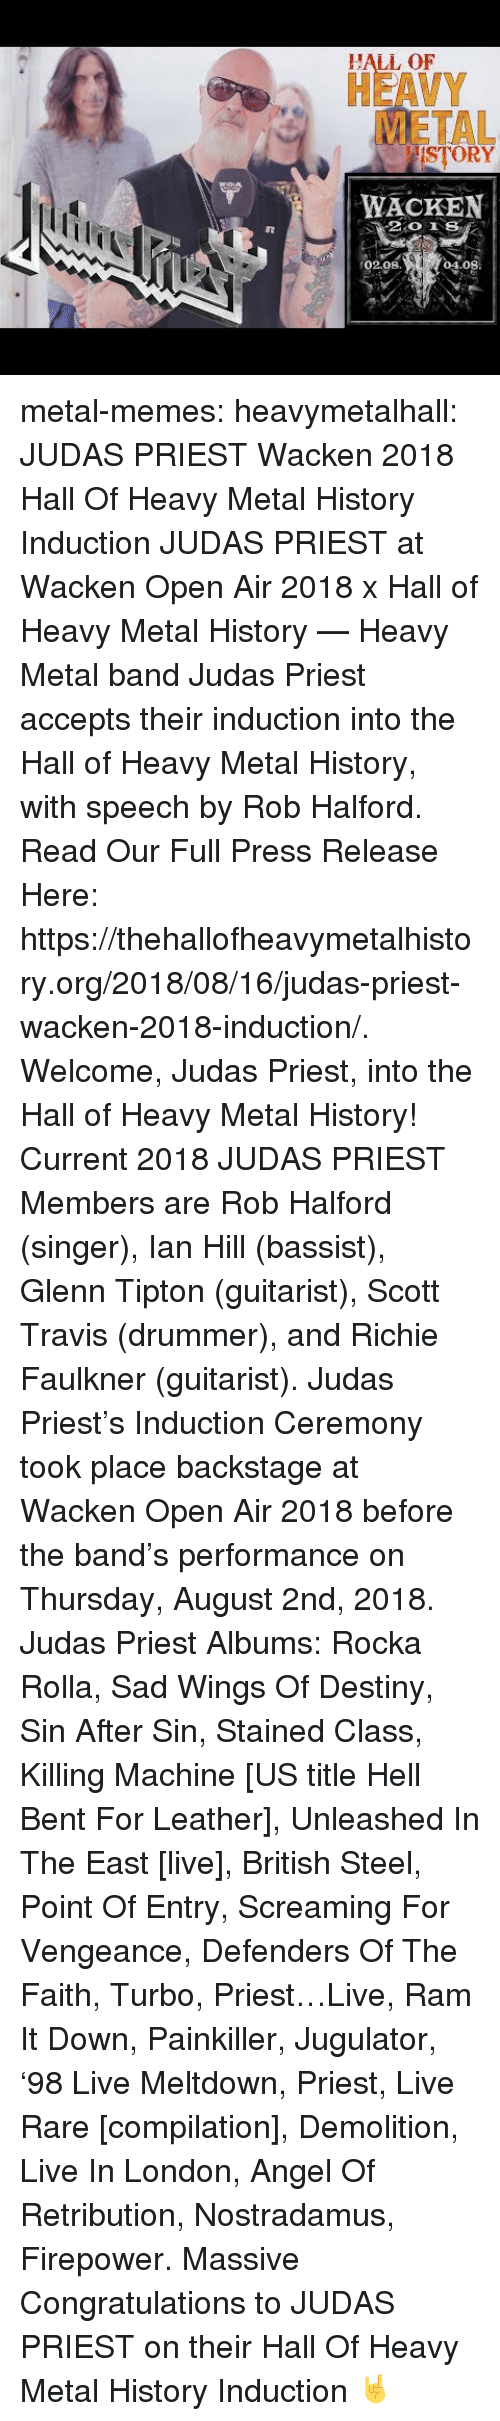 vengeance: HALL OF  HEAVY  METAL  ISTORY  WACKEN  02.08  04.08 metal-memes:  heavymetalhall:  JUDAS PRIEST Wacken 2018 Hall Of Heavy Metal History Induction JUDAS PRIEST at Wacken Open Air 2018 x Hall of Heavy Metal History — Heavy Metal band Judas Priest accepts their induction into the Hall of Heavy Metal History, with speech by Rob Halford.   Read Our Full Press Release Here: https://thehallofheavymetalhistory.org/2018/08/16/judas-priest-wacken-2018-induction/.   Welcome, Judas Priest, into the Hall of Heavy Metal History!   Current 2018 JUDAS PRIEST Members are Rob Halford (singer), Ian Hill (bassist), Glenn Tipton (guitarist), Scott Travis (drummer), and Richie Faulkner (guitarist).  Judas Priest's Induction Ceremony took place backstage at Wacken Open Air 2018 before the band's performance on Thursday, August 2nd, 2018.   Judas Priest Albums: Rocka Rolla, Sad Wings Of Destiny, Sin After Sin, Stained Class, Killing Machine [US title Hell Bent For Leather], Unleashed In The East [live], British Steel, Point Of Entry, Screaming For Vengeance, Defenders Of The Faith, Turbo, Priest…Live, Ram It Down, Painkiller, Jugulator, '98 Live Meltdown, Priest, Live  Rare [compilation], Demolition, Live In London, Angel Of Retribution, Nostradamus, Firepower.  Massive Congratulations to JUDAS PRIEST on their Hall Of Heavy Metal History Induction 🤘